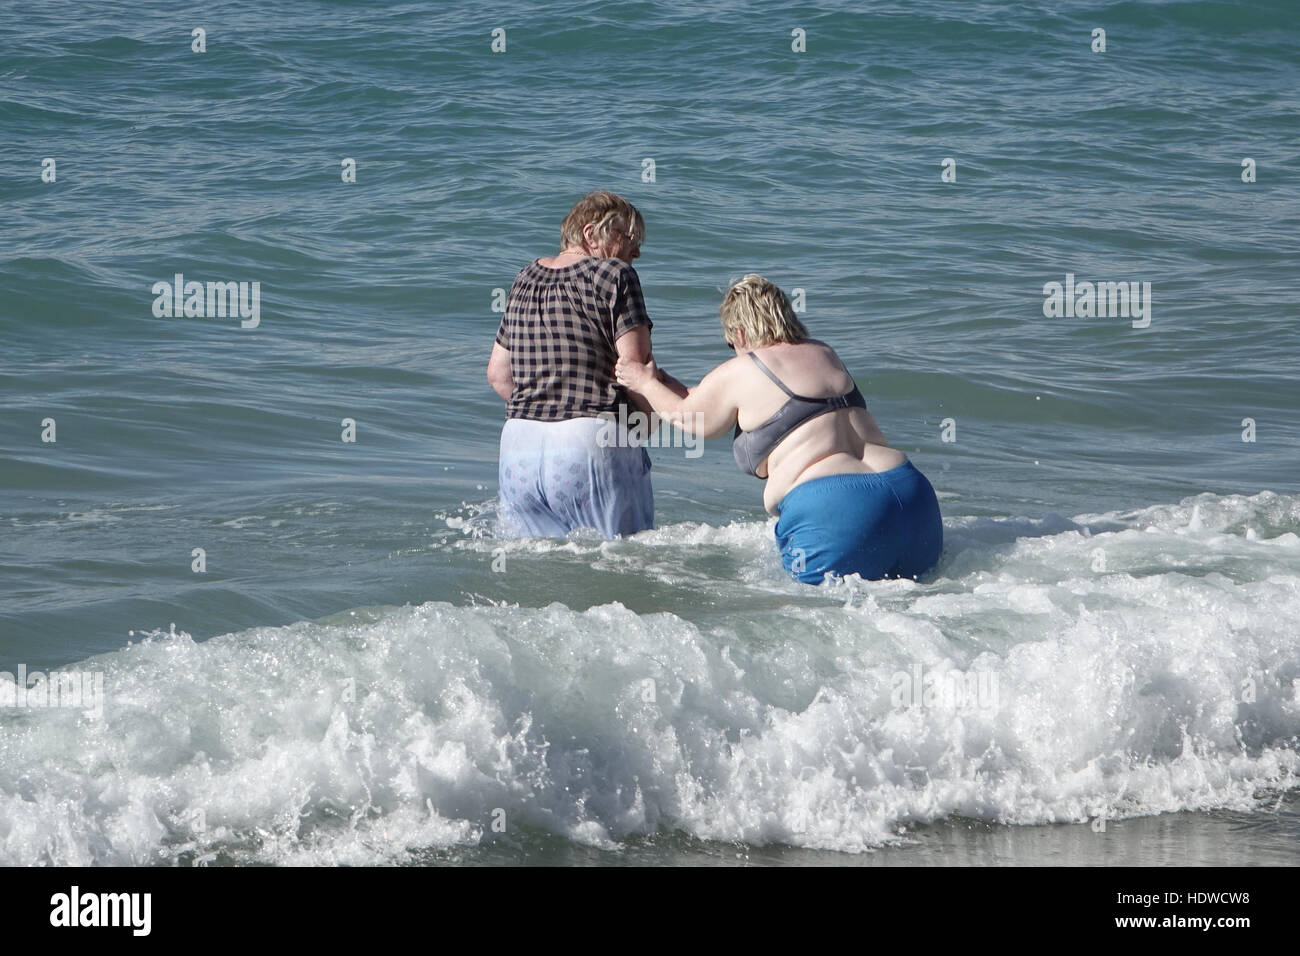 two-senior-women-playing-in-the-waves-of